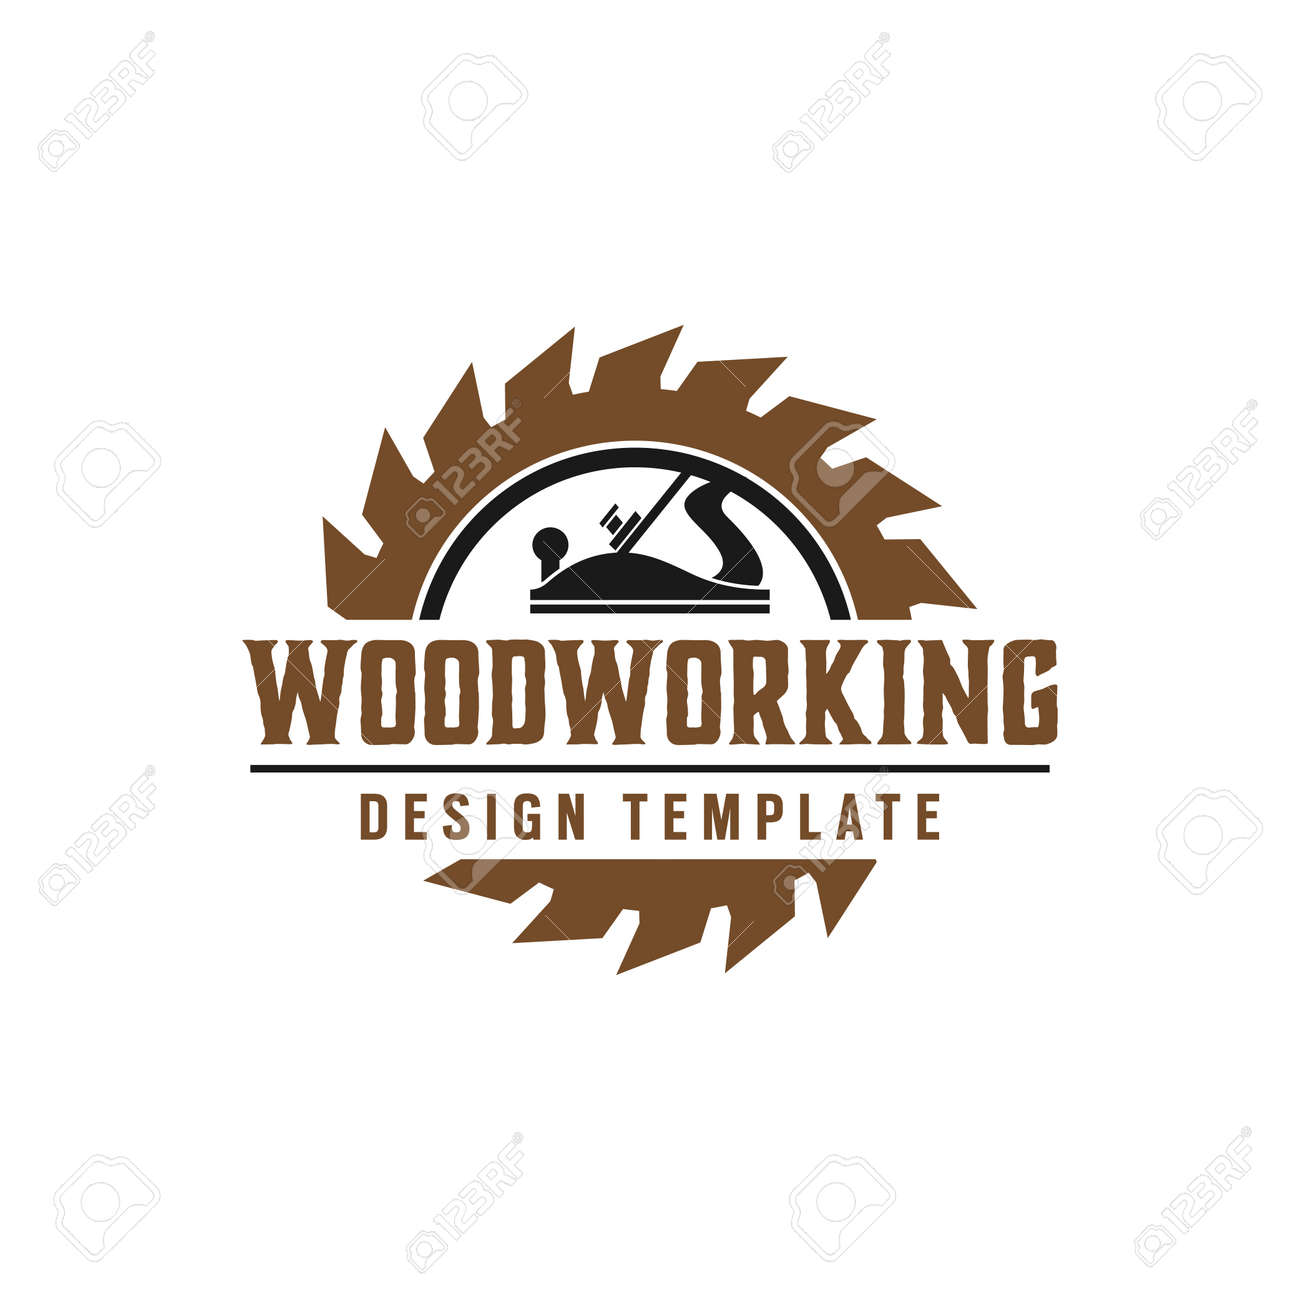 Woodworking gear logo design template vector element isolated - 106442074